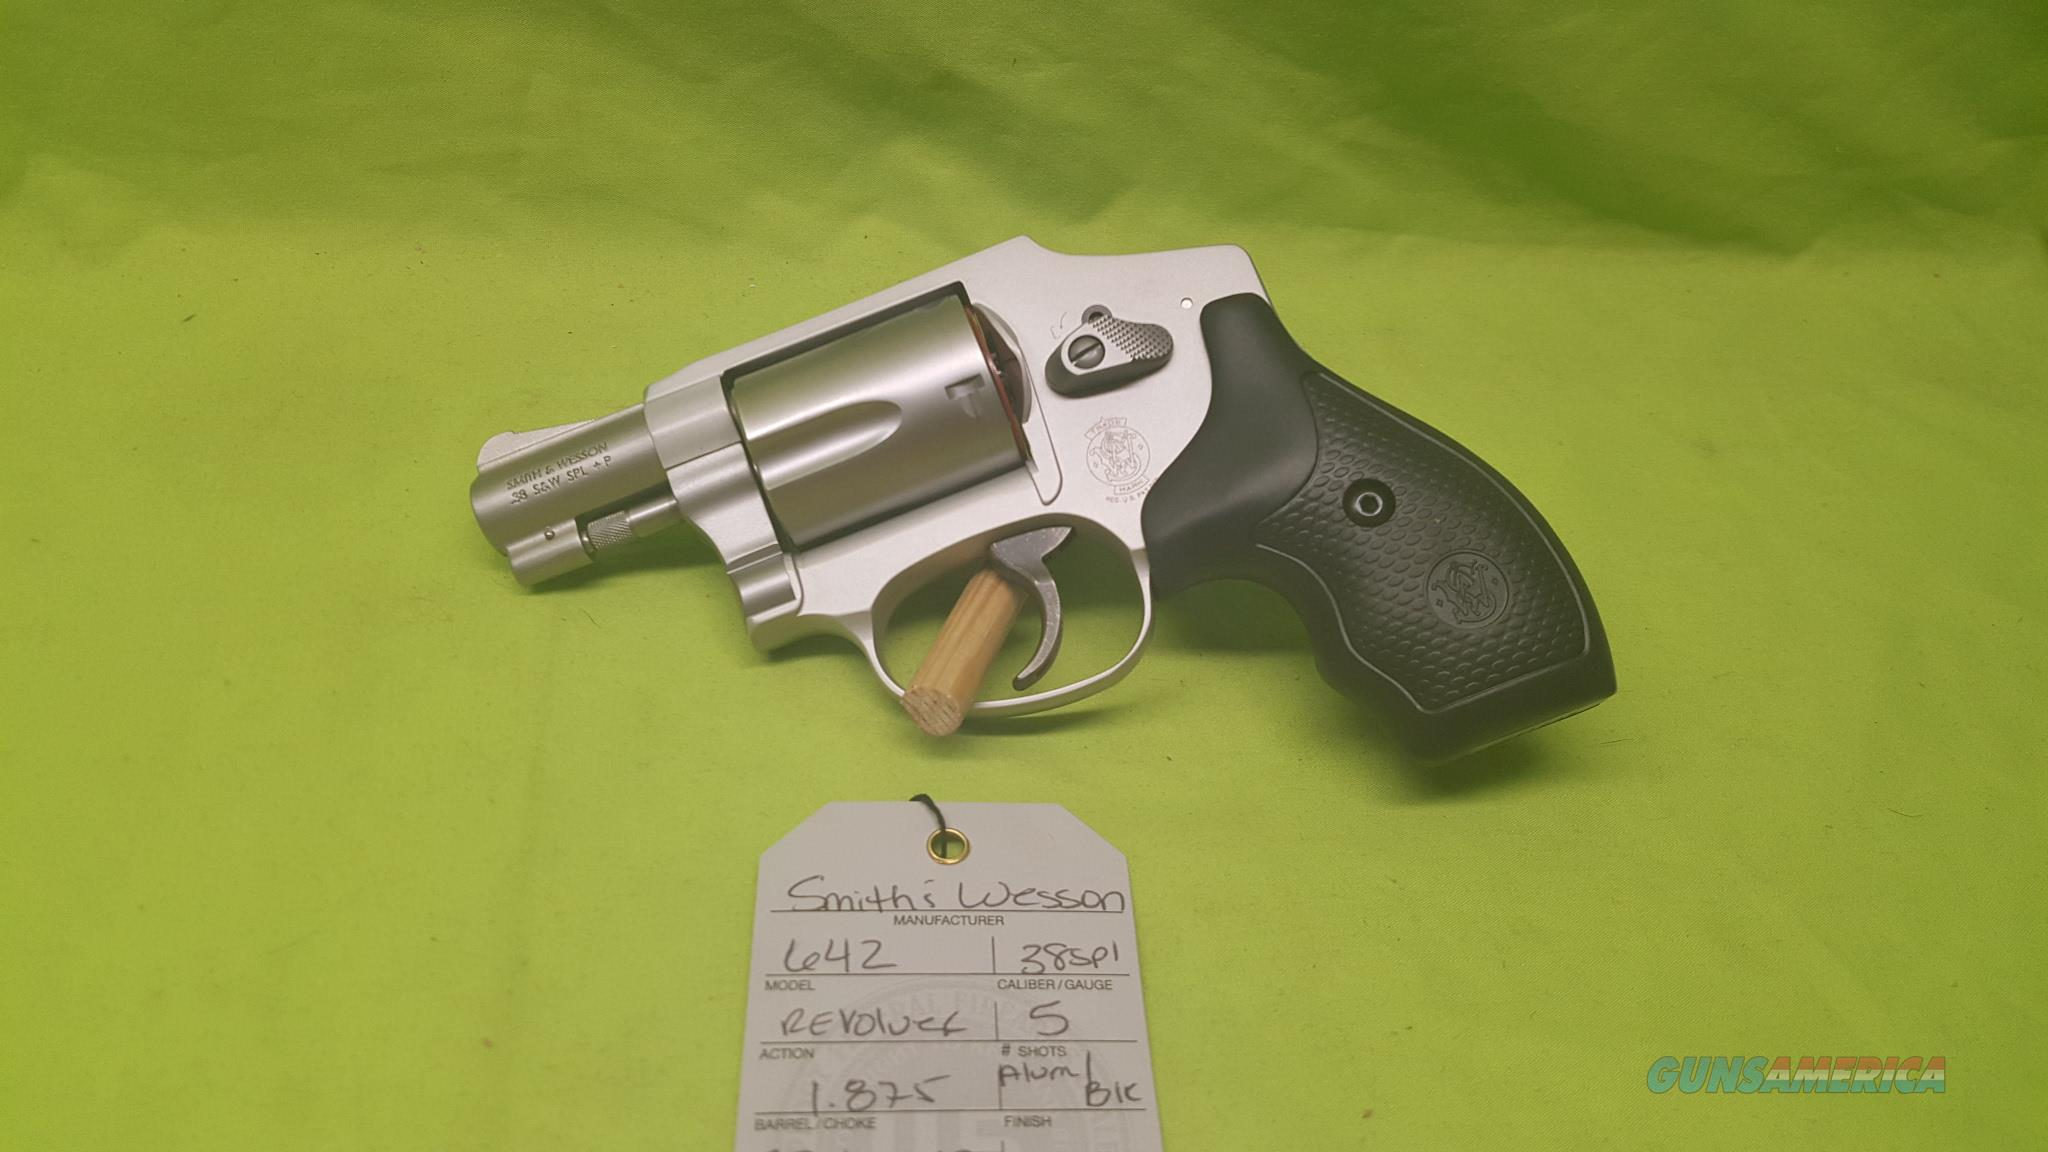 SMITH & WESSON S&W 642 HAMMERLESS 38 SPL +P AIRWEIGHT  Guns > Pistols > Smith & Wesson Revolvers > Pocket Pistols